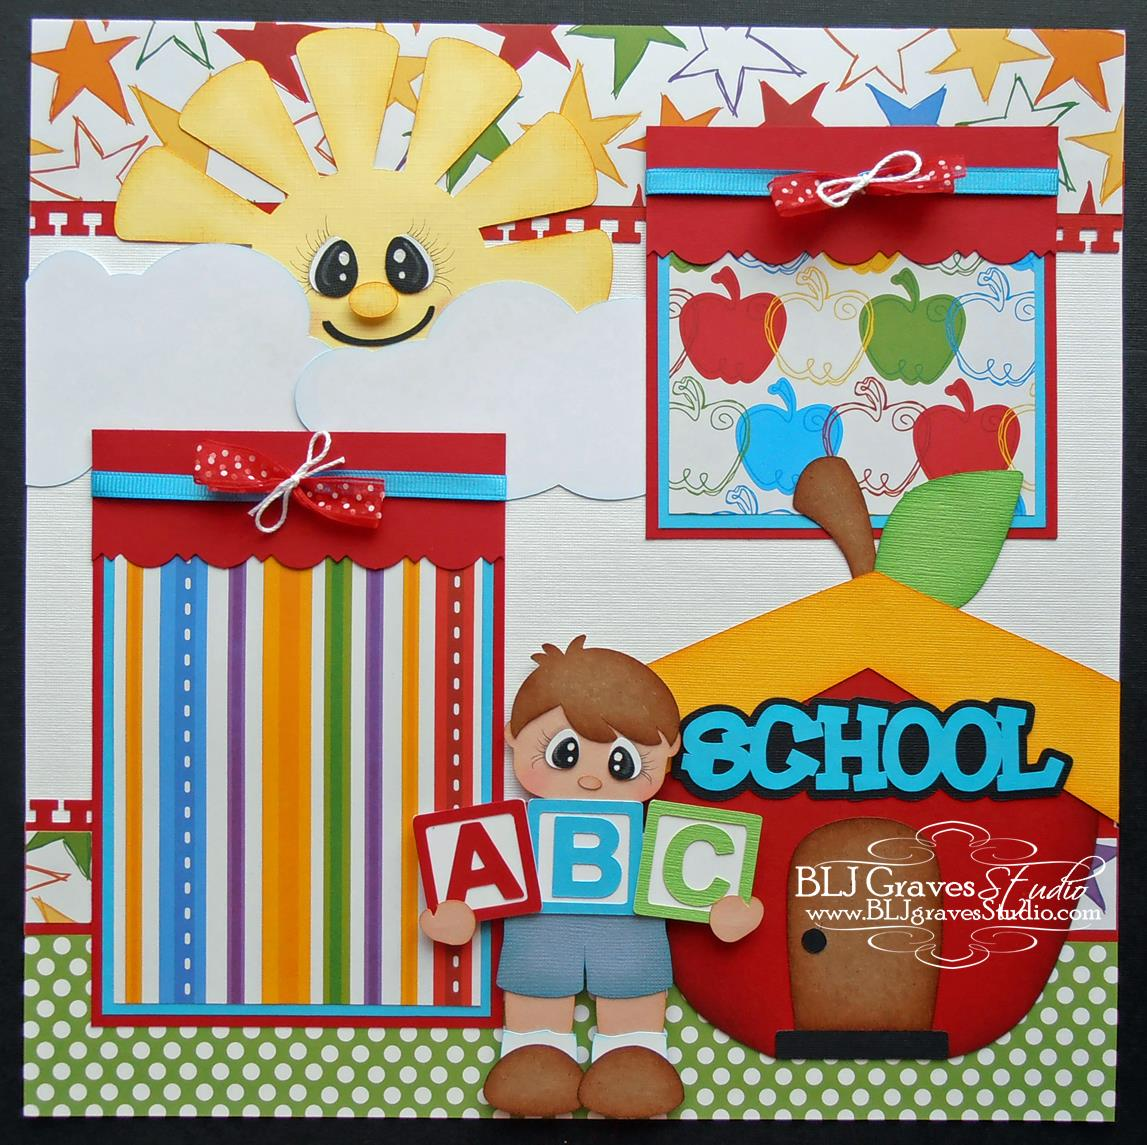 Abc scrapbook ideas list - This Layout Is Available On Ebay Or Etsy 1 Available Sold